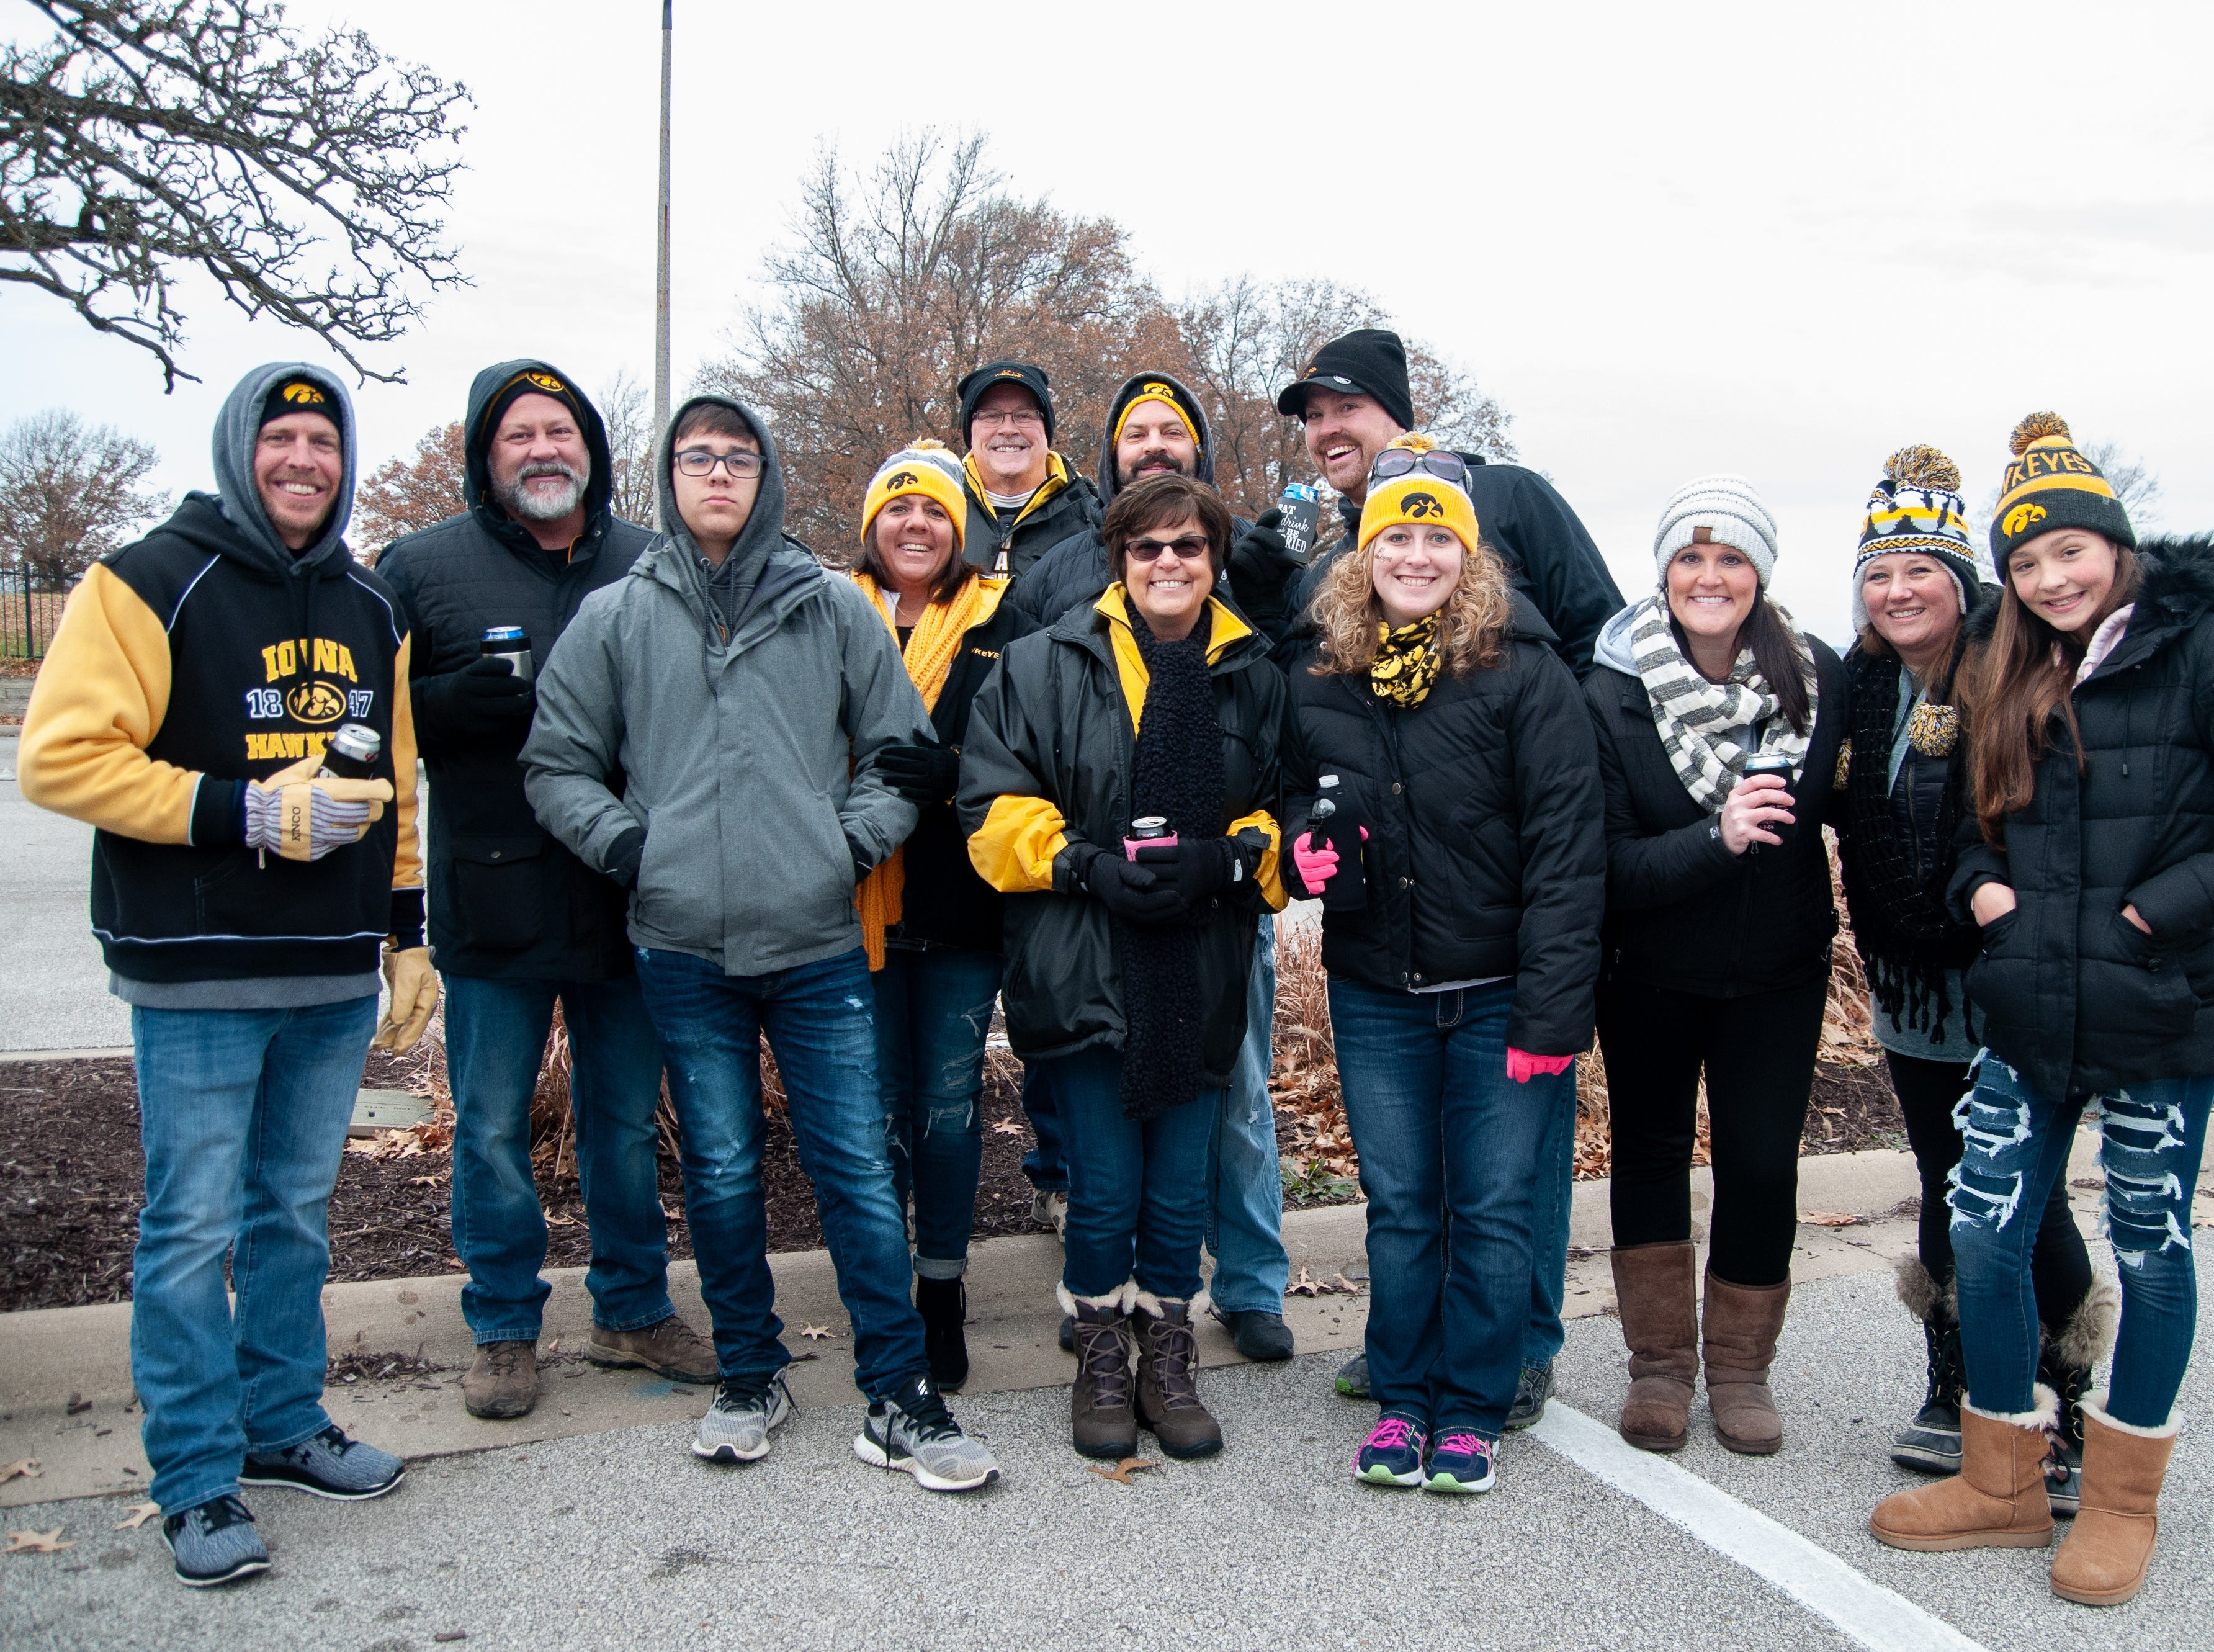 The Obe Tailgate, of Indiana and Iowa, Friday, Nov. 23, 2018, while tailgating before the Iowa game against Nebraska in Iowa City.